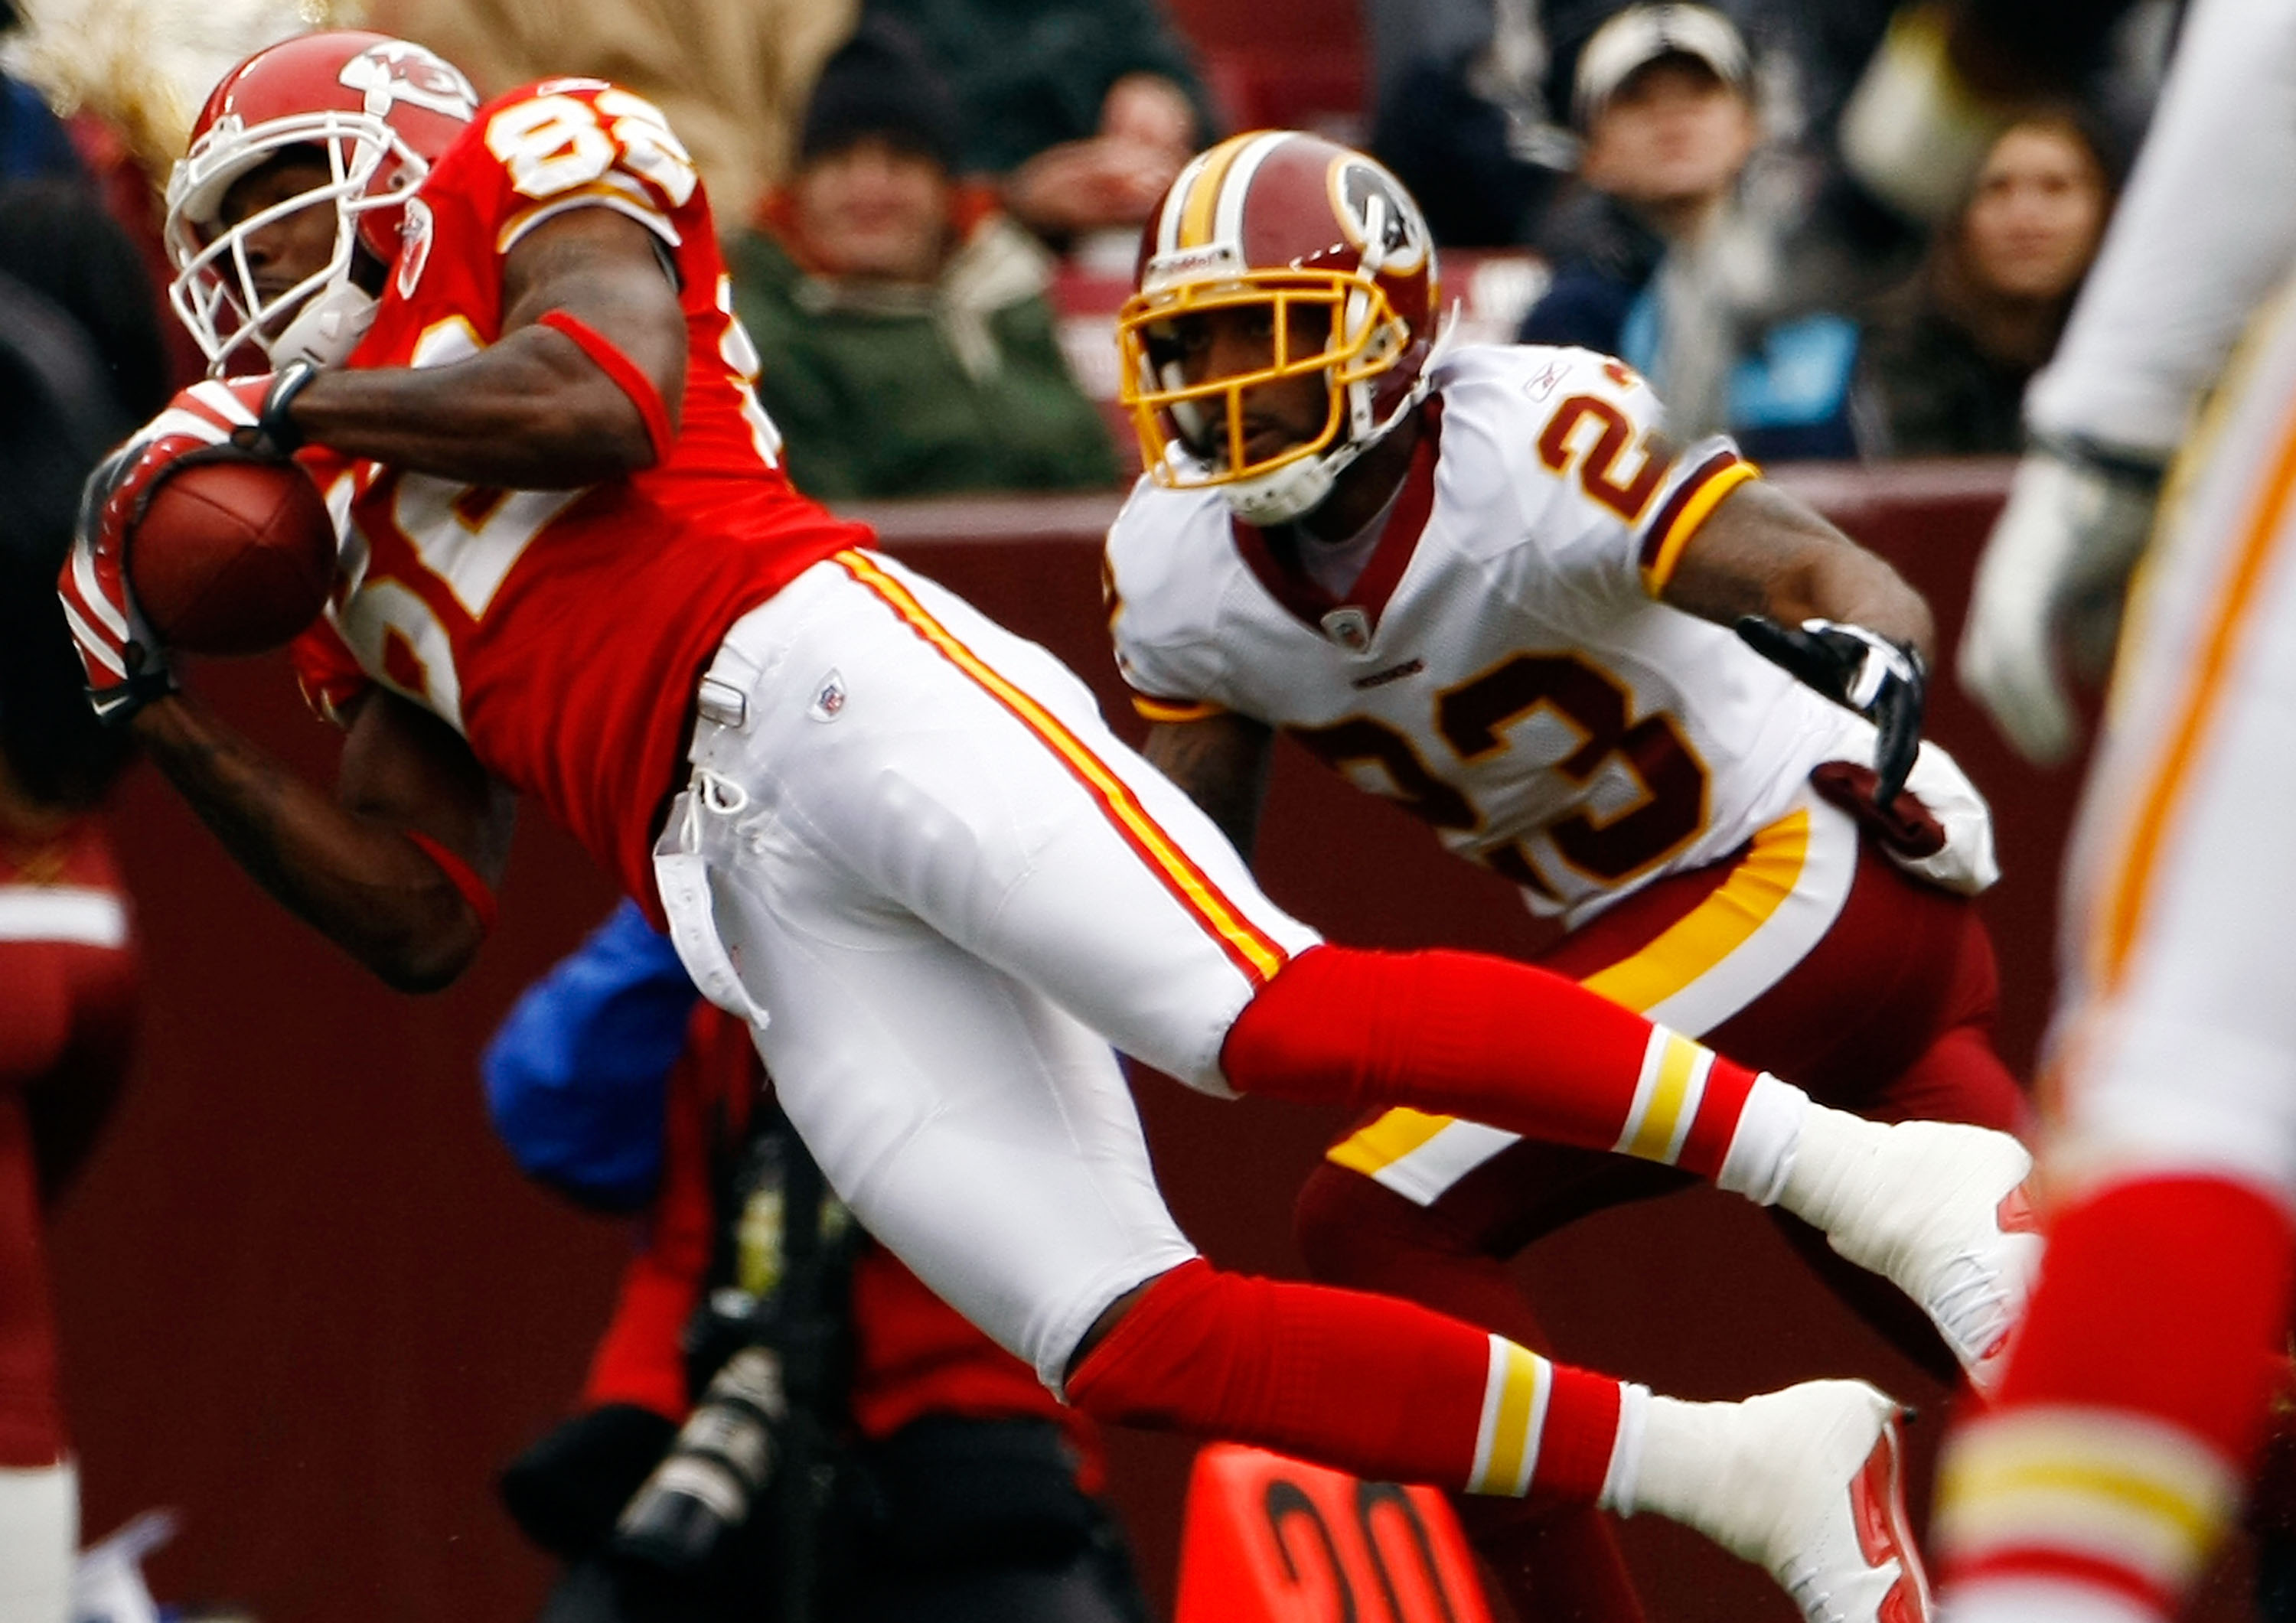 LANDOVER, MD - OCTOBER 18:  Dwayne Bowe #82 of the Kansas City Chiefs catches a pass as DeAngelo Hall #23 of the Washington Redskins defends during their game October 18, 2009 at FedEx Field in Landover, Maryland.The Chiefs won the game 14-6.  (Photo by W